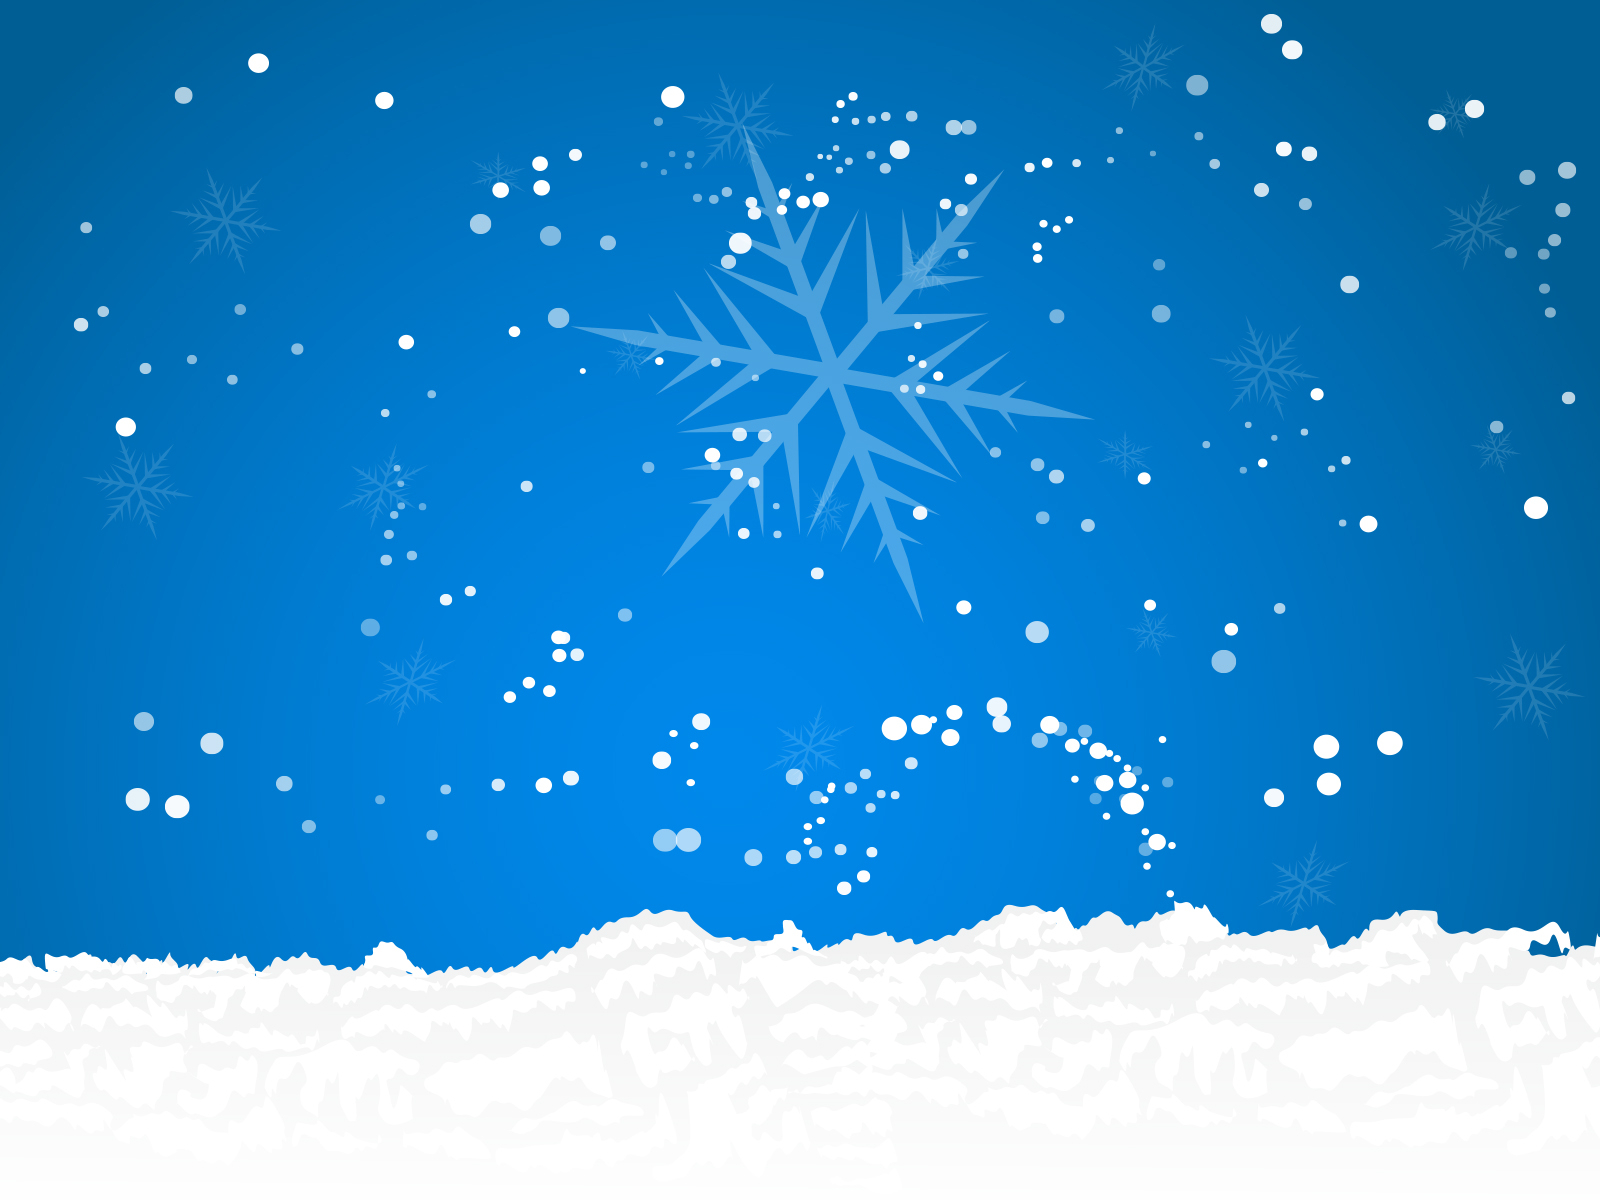 Snow Powerpoint - Free Ppt Backgrounds And Templates Intended For Snow Powerpoint Template